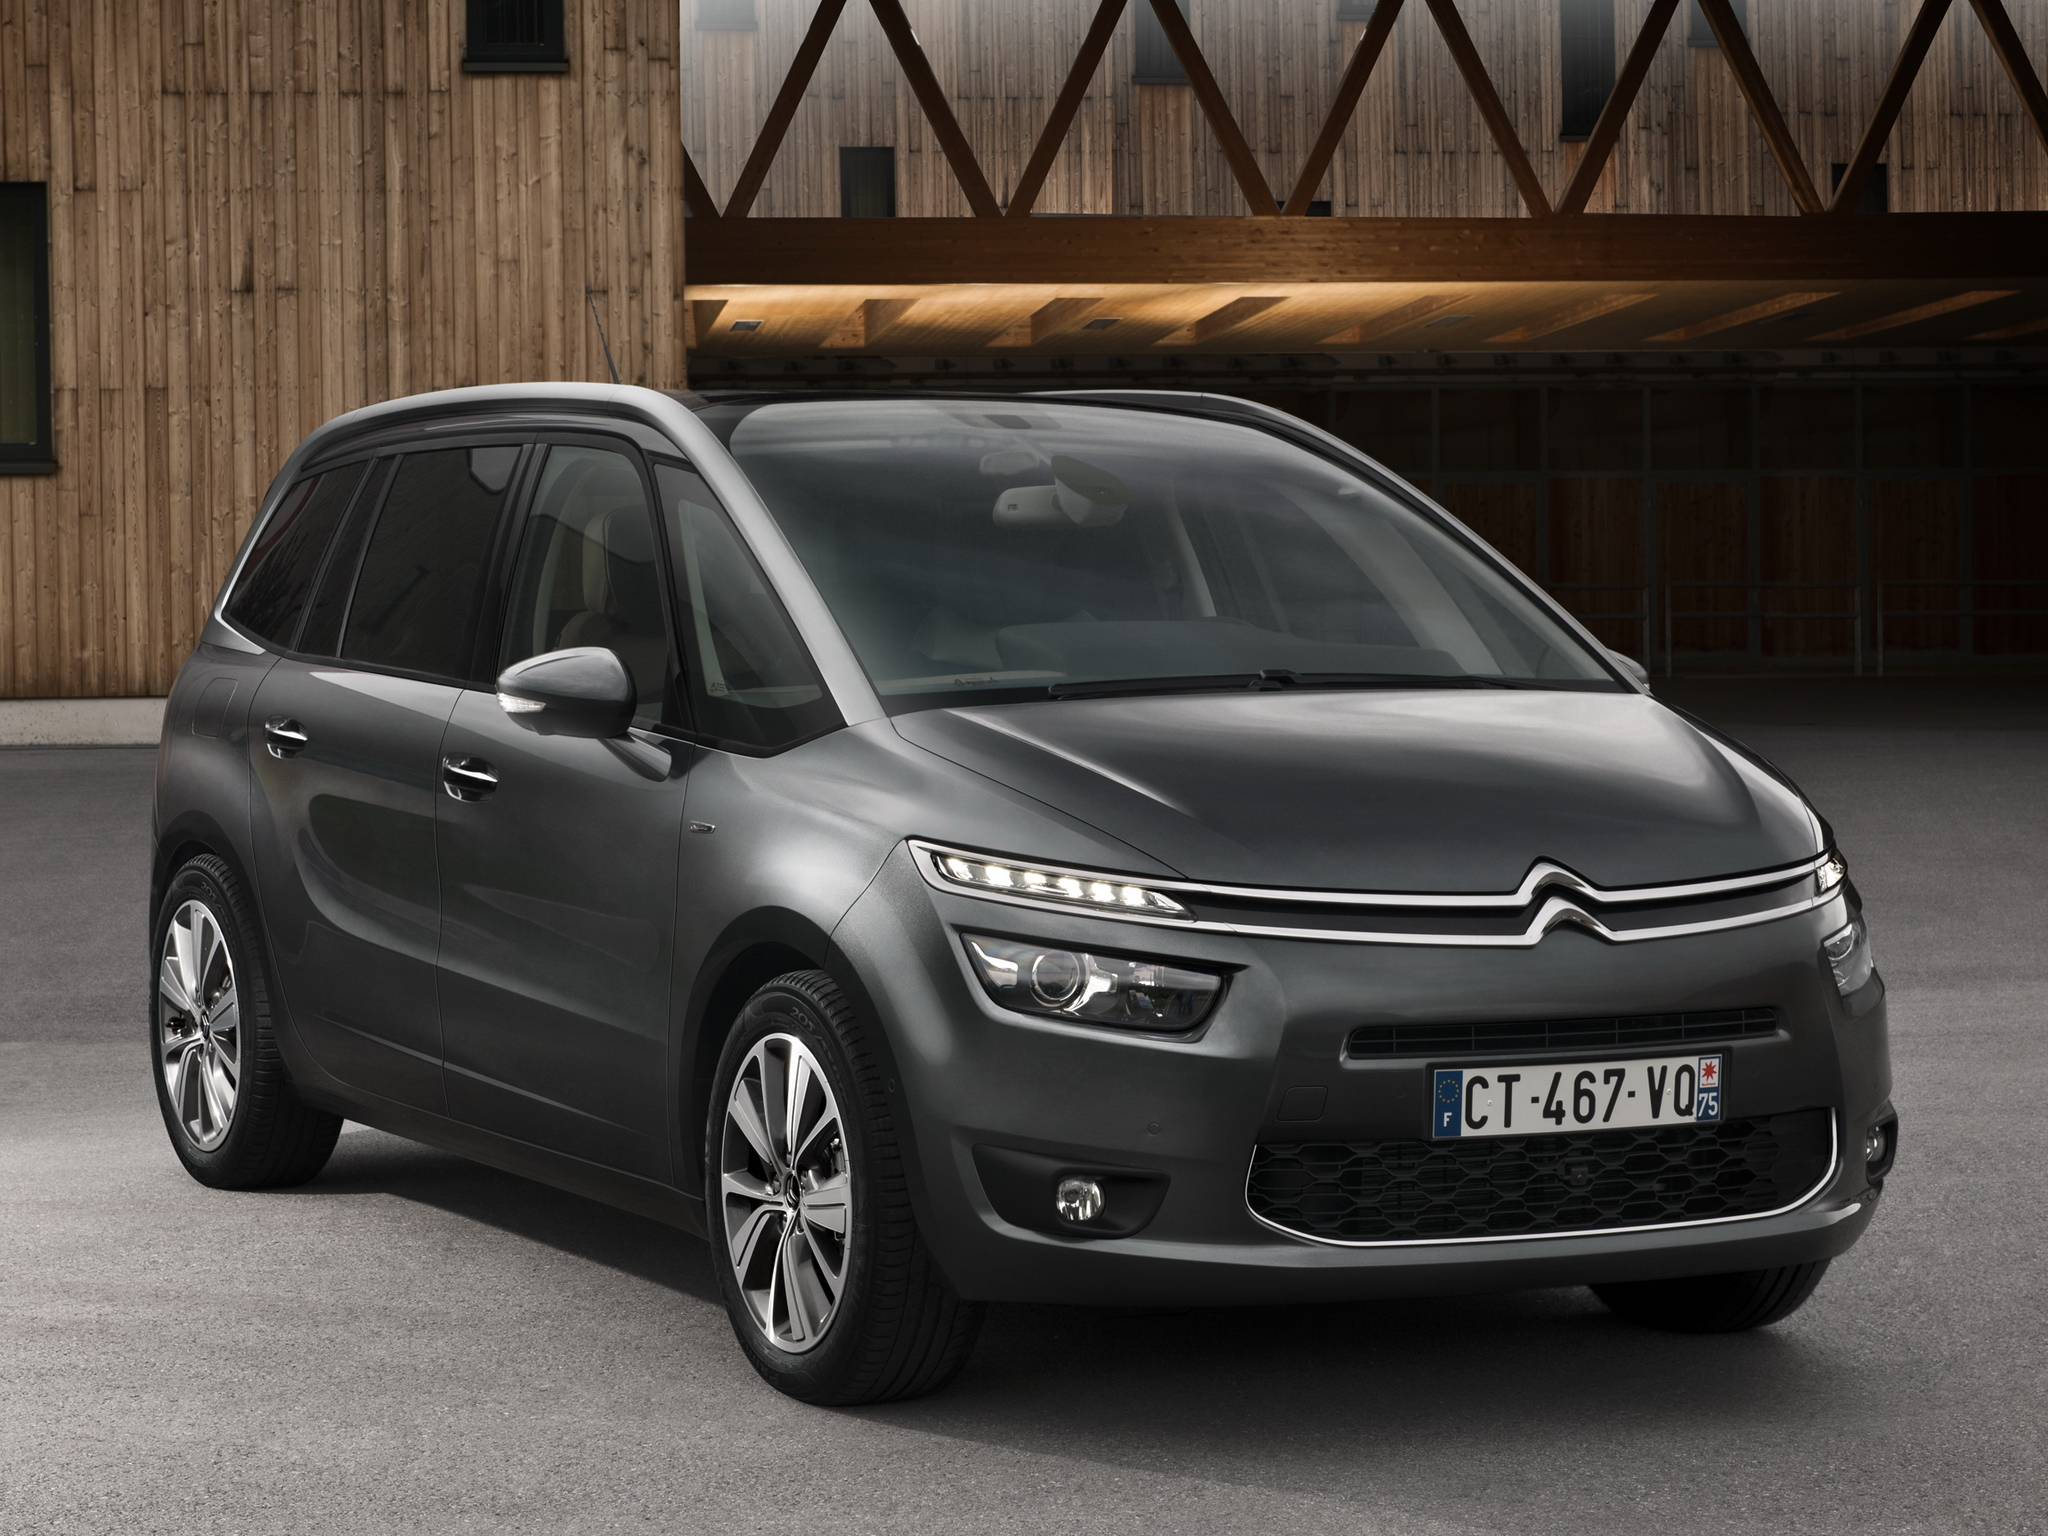 citroen c4 grand picasso wallpapers full hd pictures. Black Bedroom Furniture Sets. Home Design Ideas